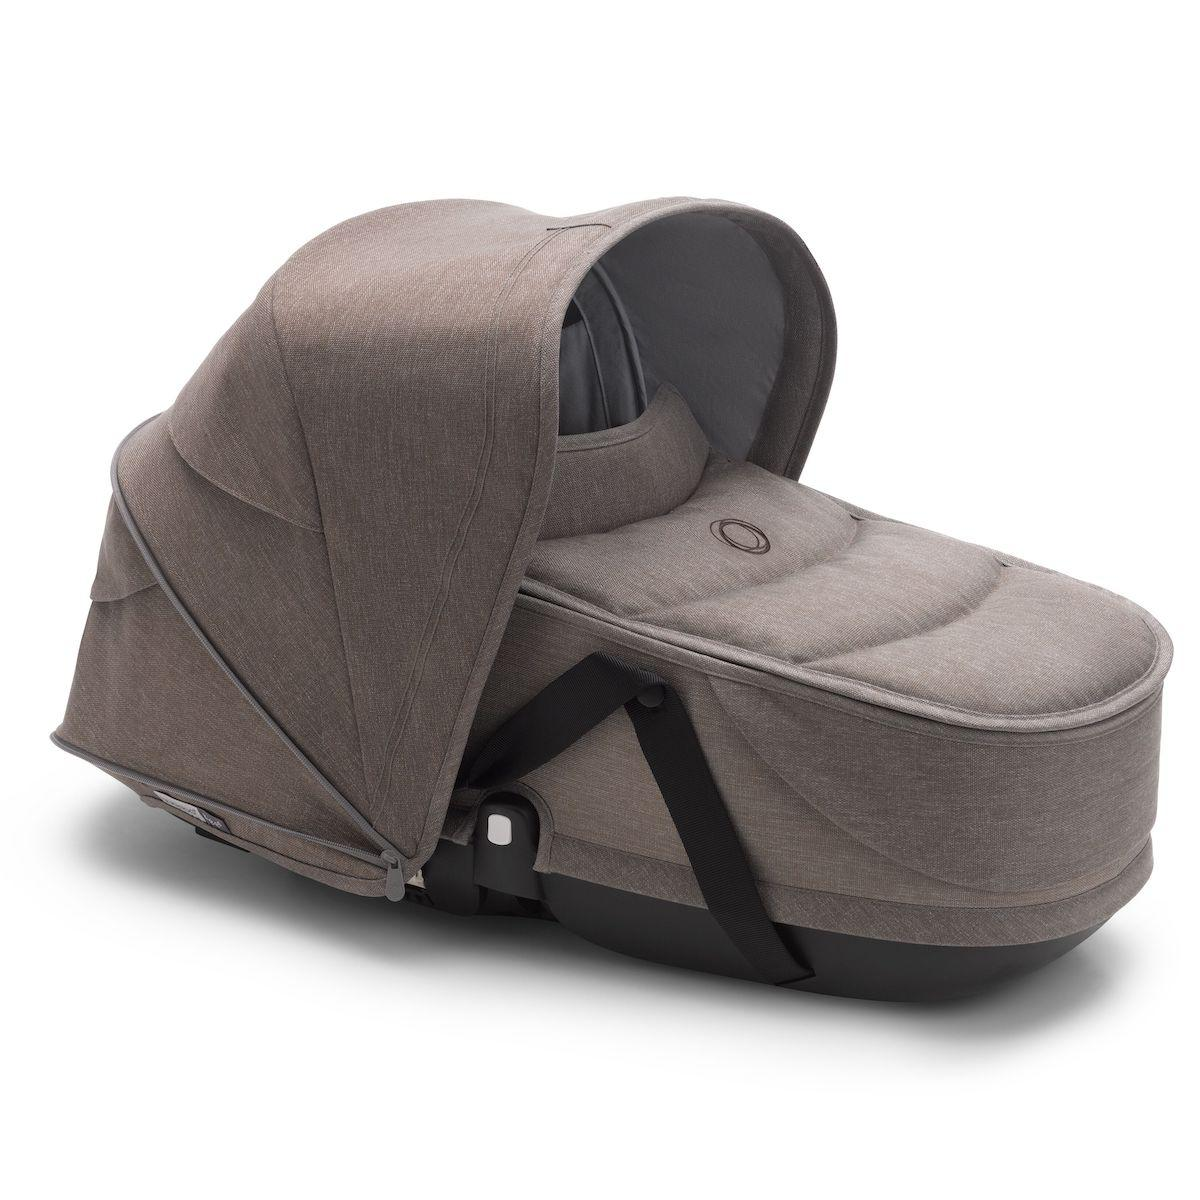 Bugaboo BEE6 capazo completo Mineral taupe